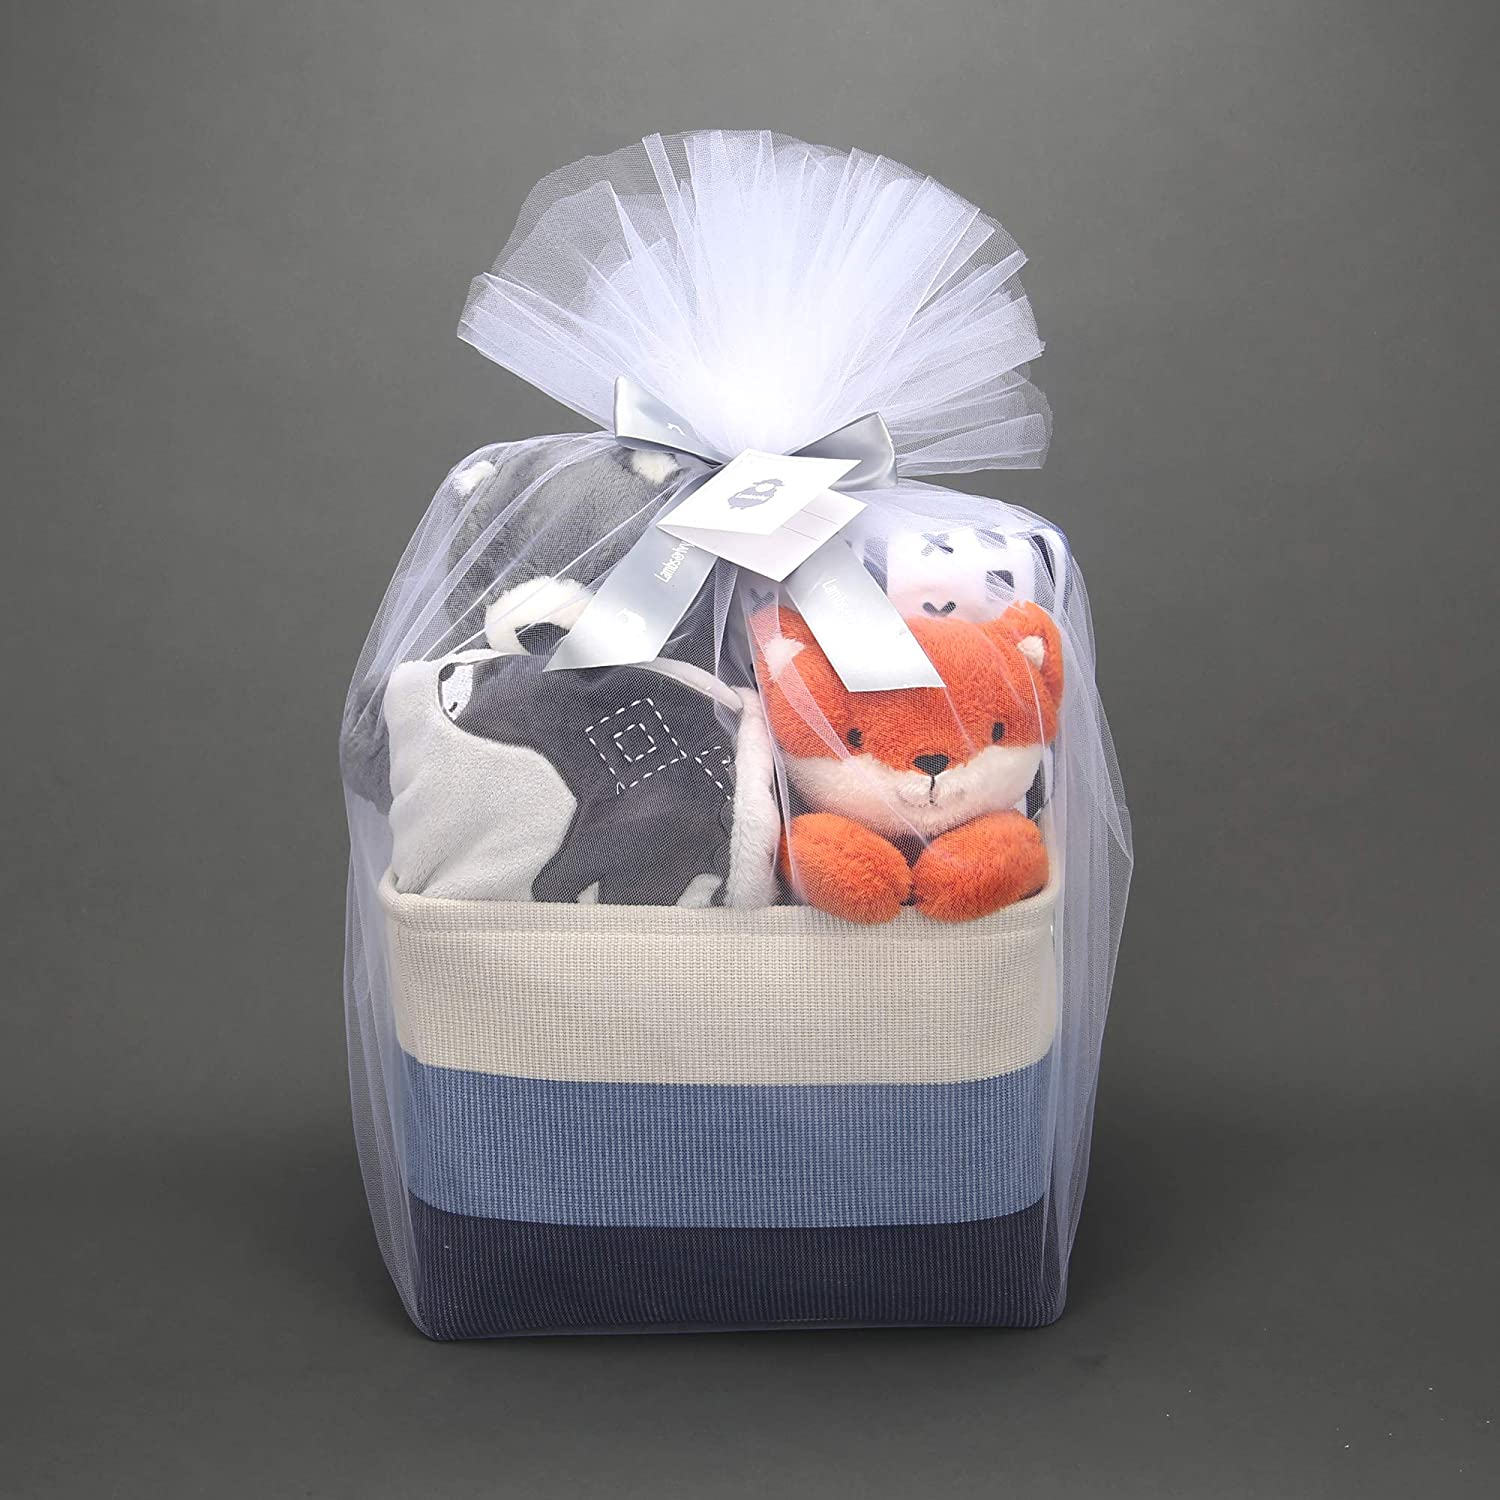 Lambs & Ivy Blue 5-Piece Baby Gift Basket for Baby Shower/Newborn Welcome Home